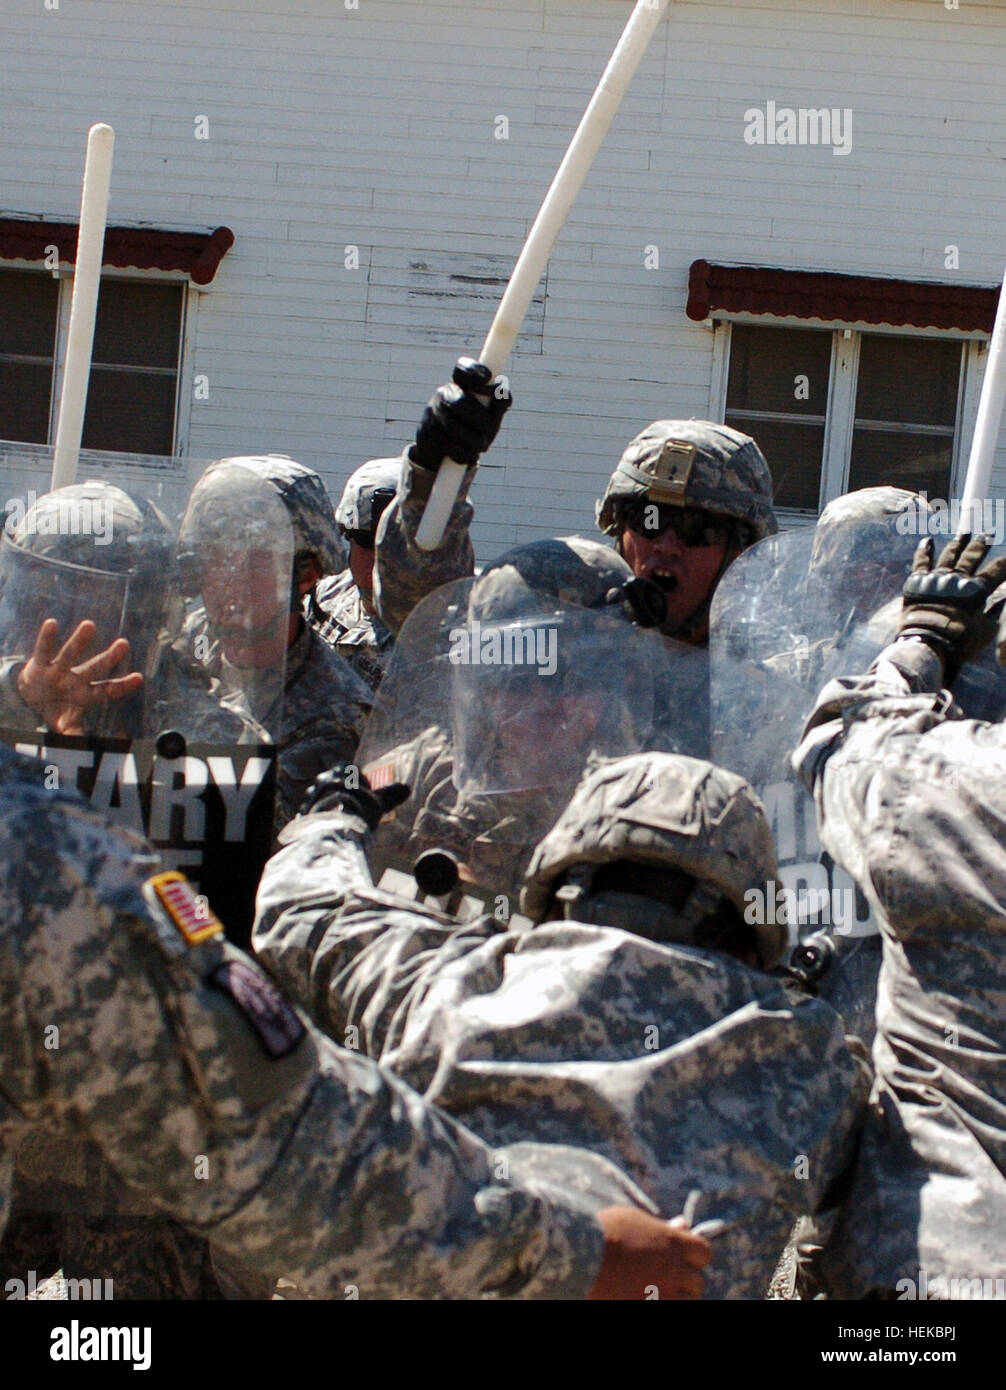 Soldiers from the 40th Military Police Company, 18th Military Police Battalion, 49th Military Police Brigade, California - Stock Image